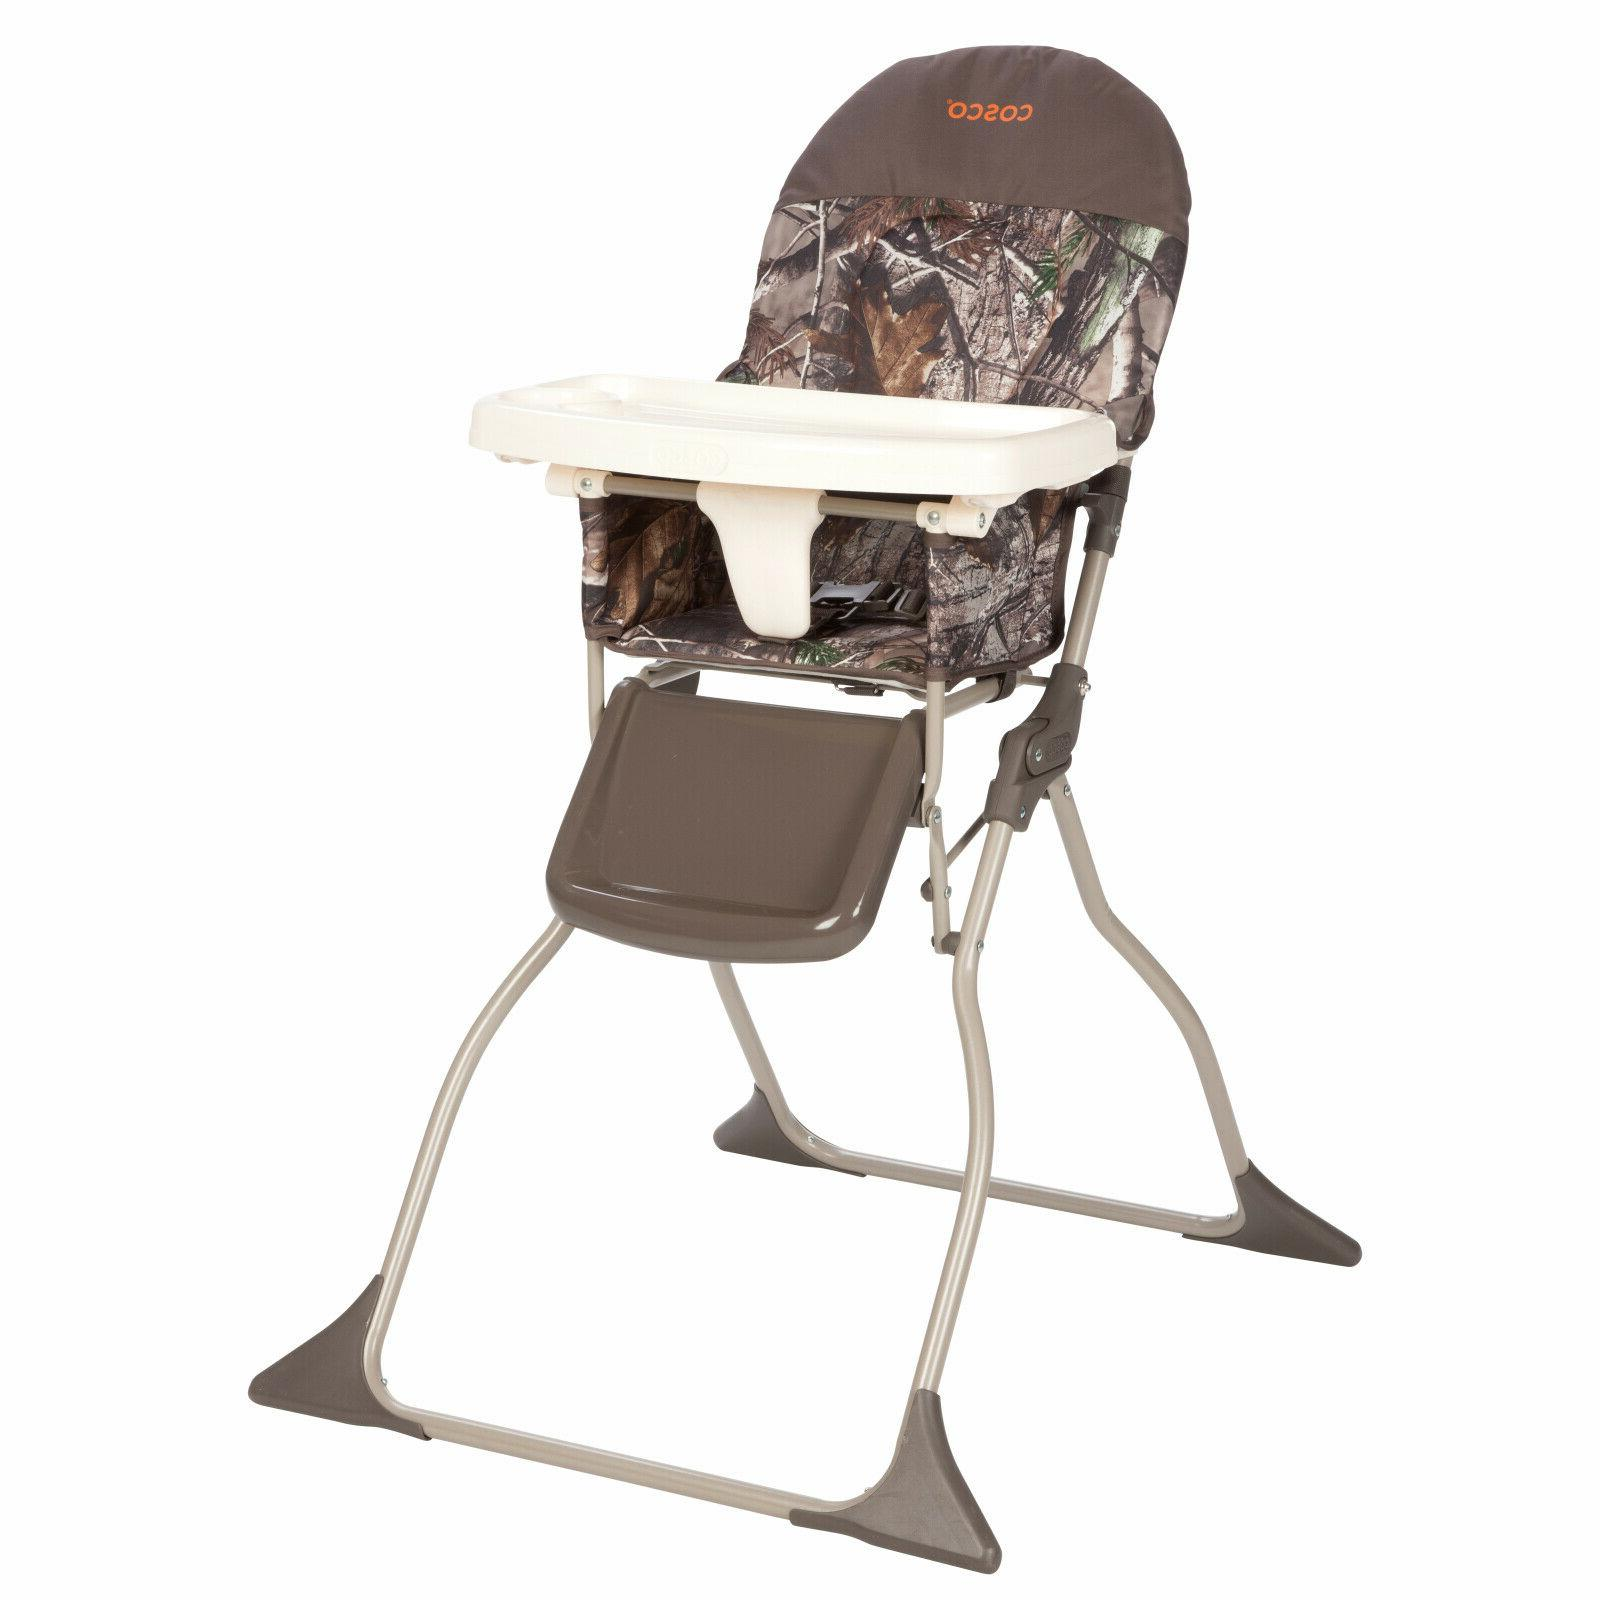 Toddler High Chair Convertible 3 Point Harness w/ Adjustable